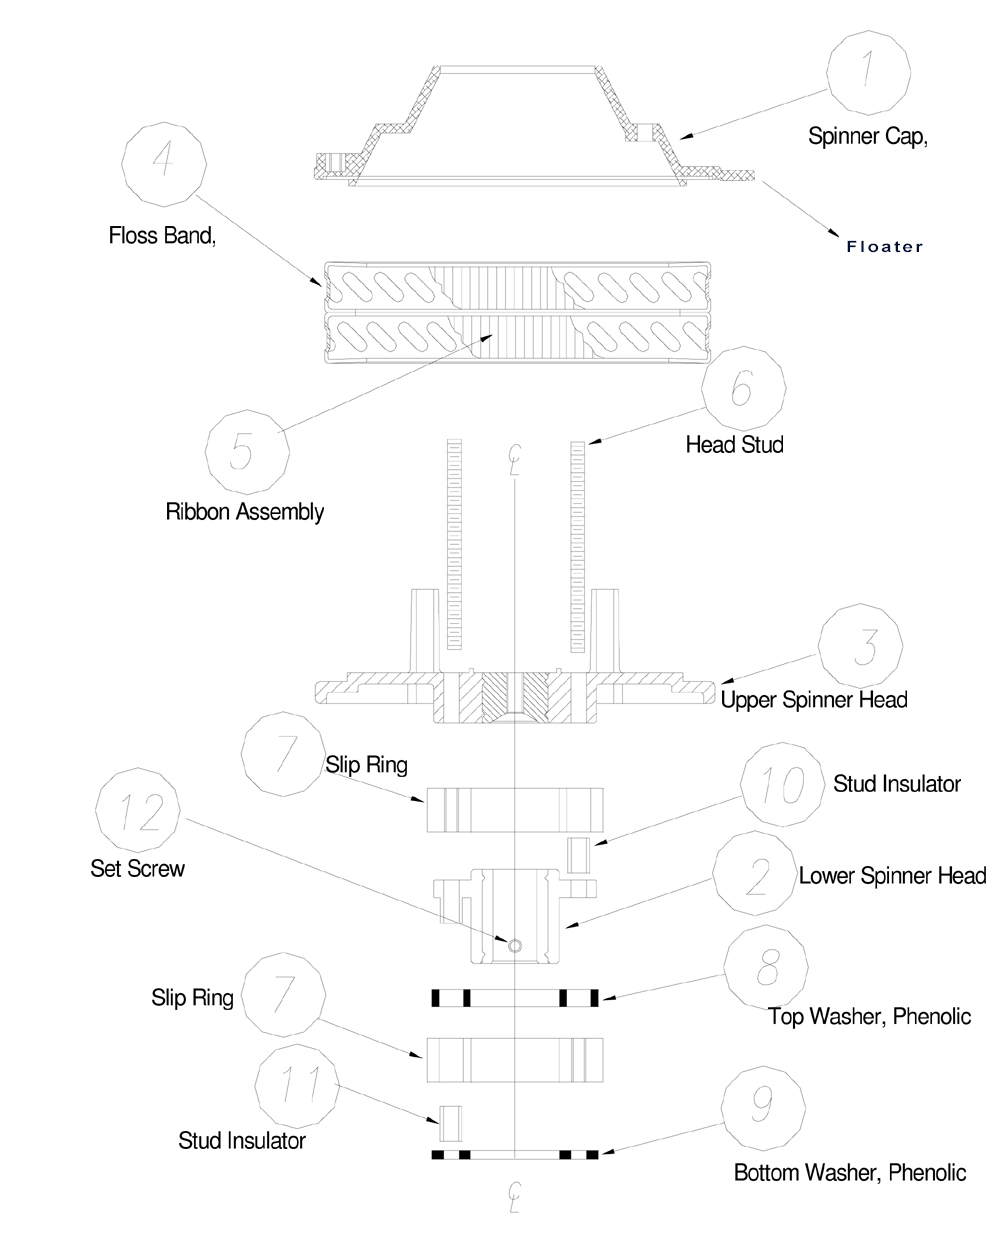 Cotton candy machine diagram